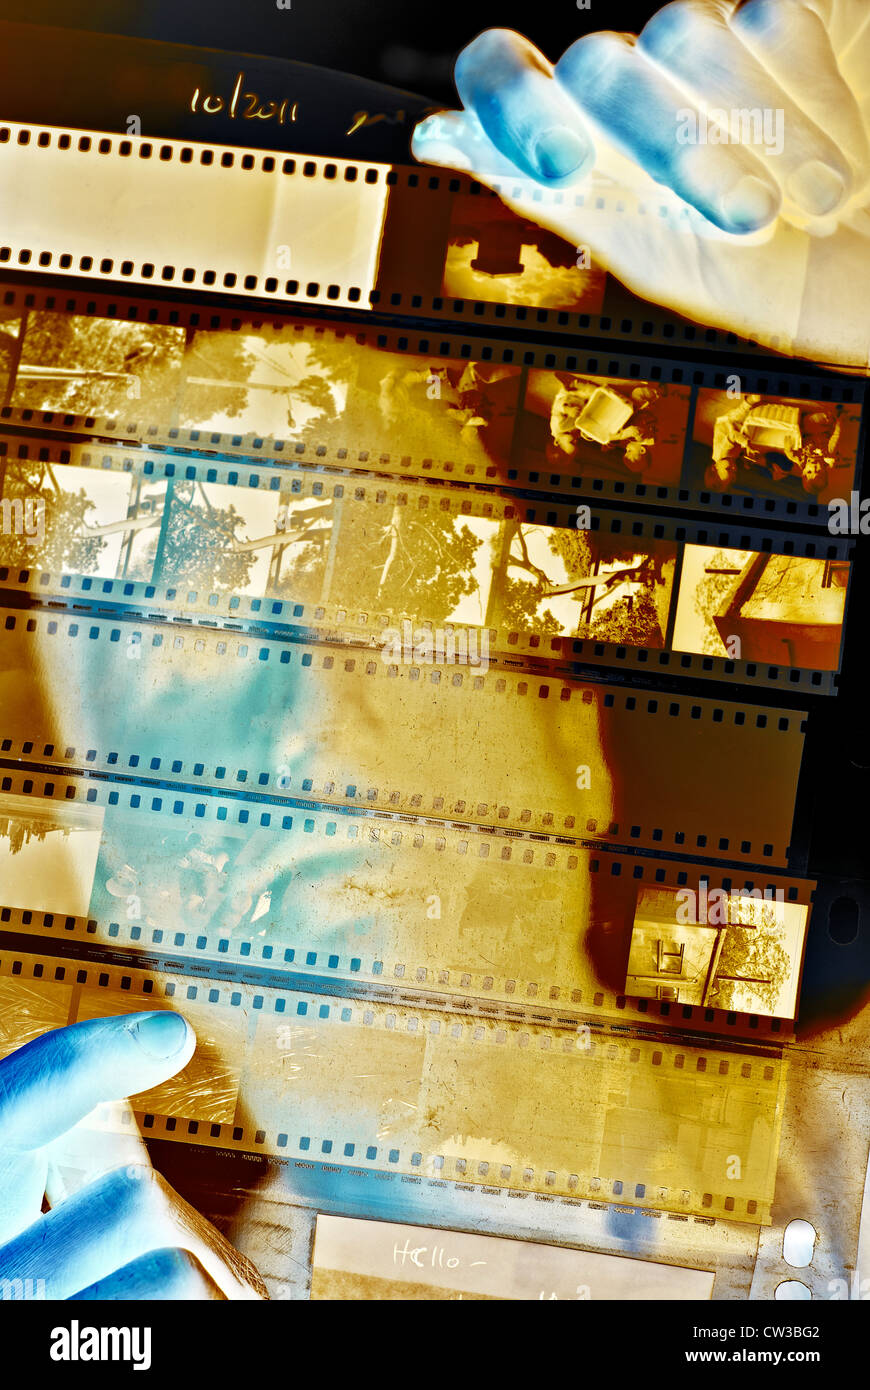 Photographer looks at a sheet of negatives - digitally manipulated image Stock Photo